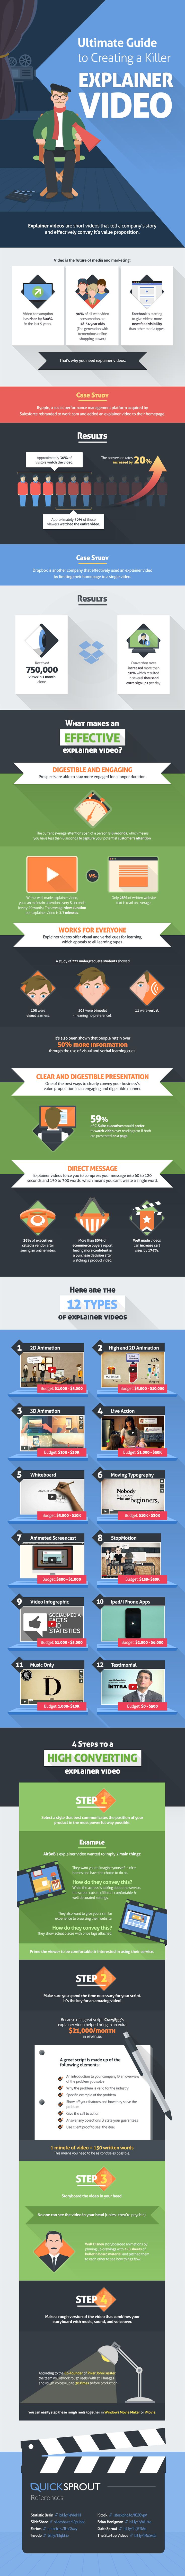 The Ultimate Guide to Creating a Killer Explainer Video